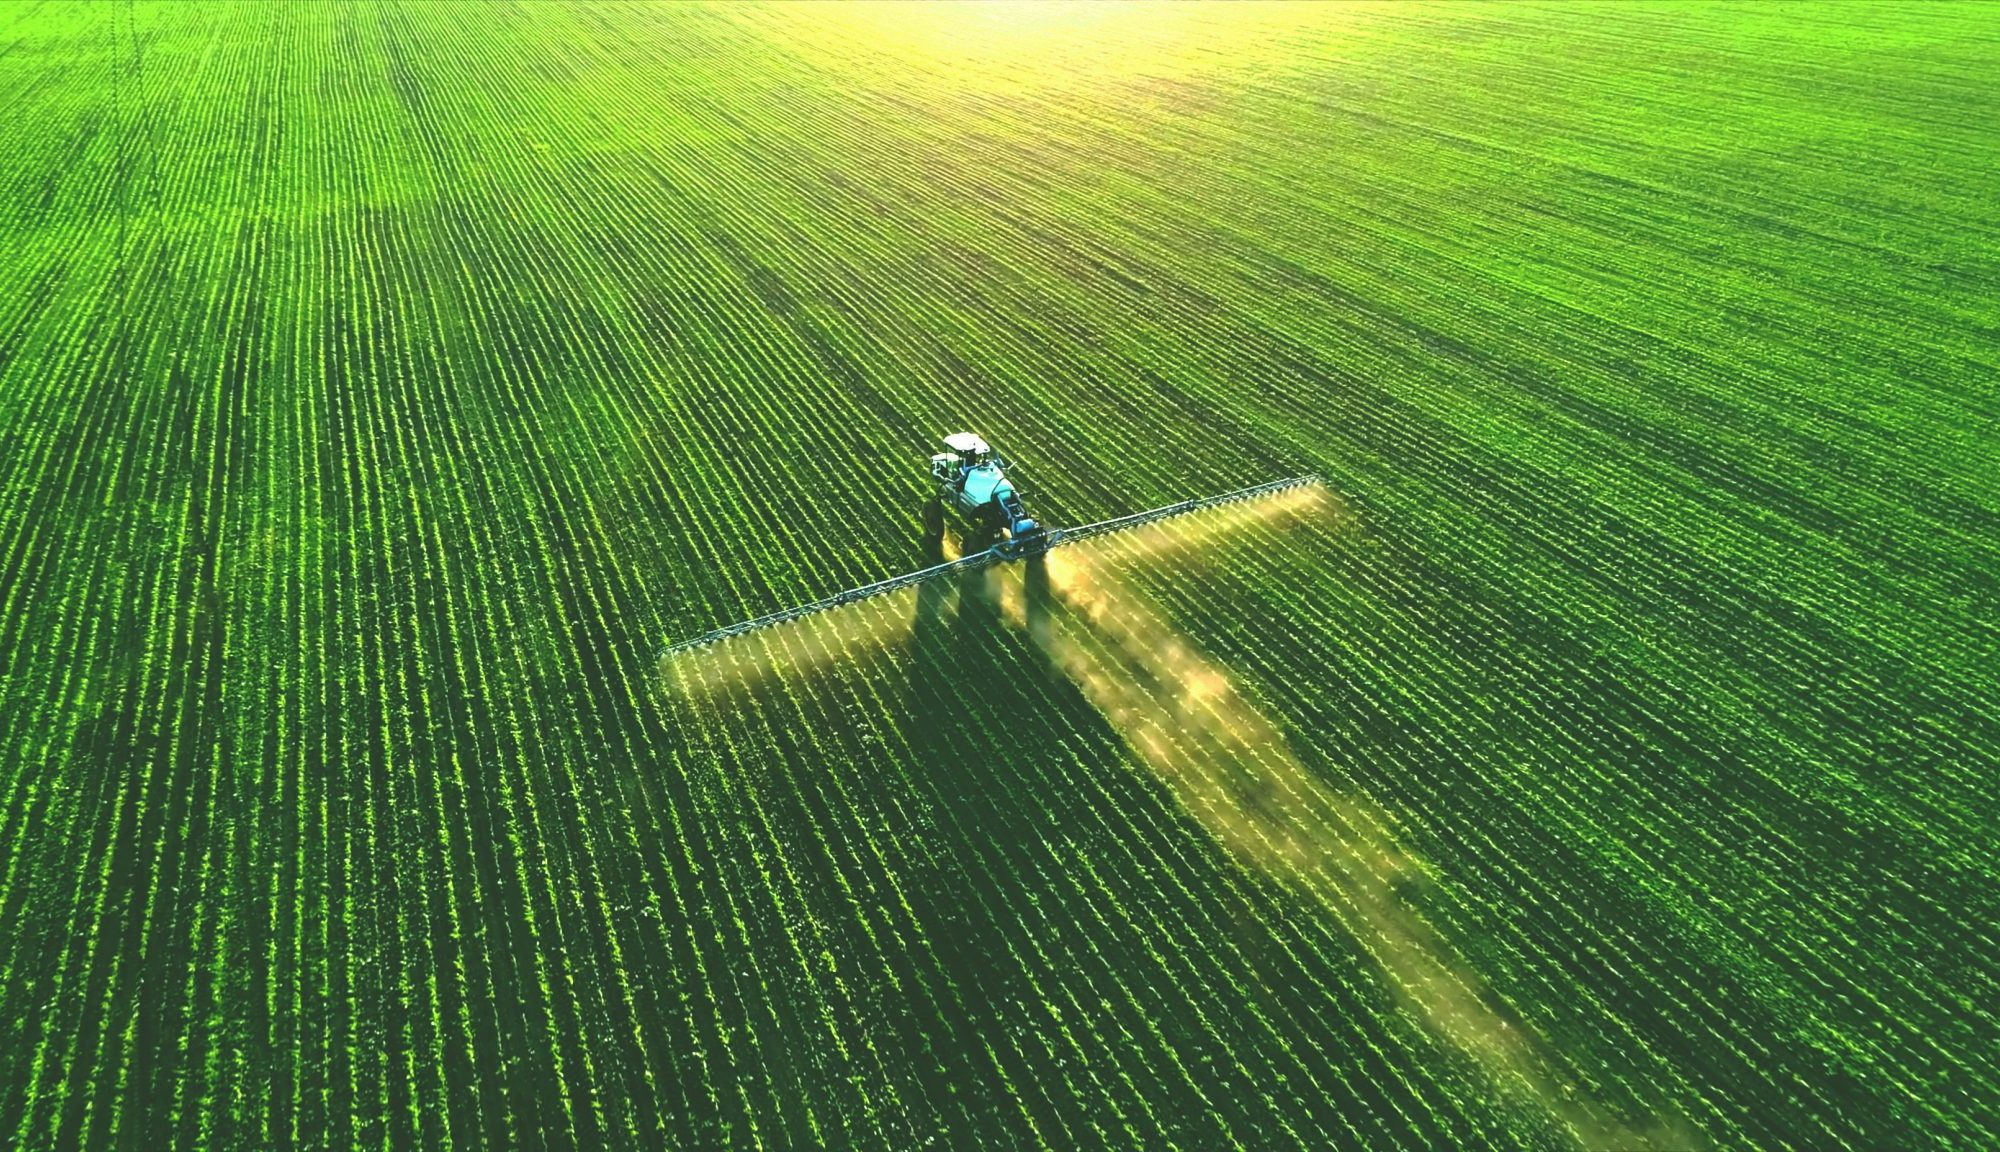 A tractor watering crops with a sprinkler system on a sunny day. This is symbolic to agricultural production.